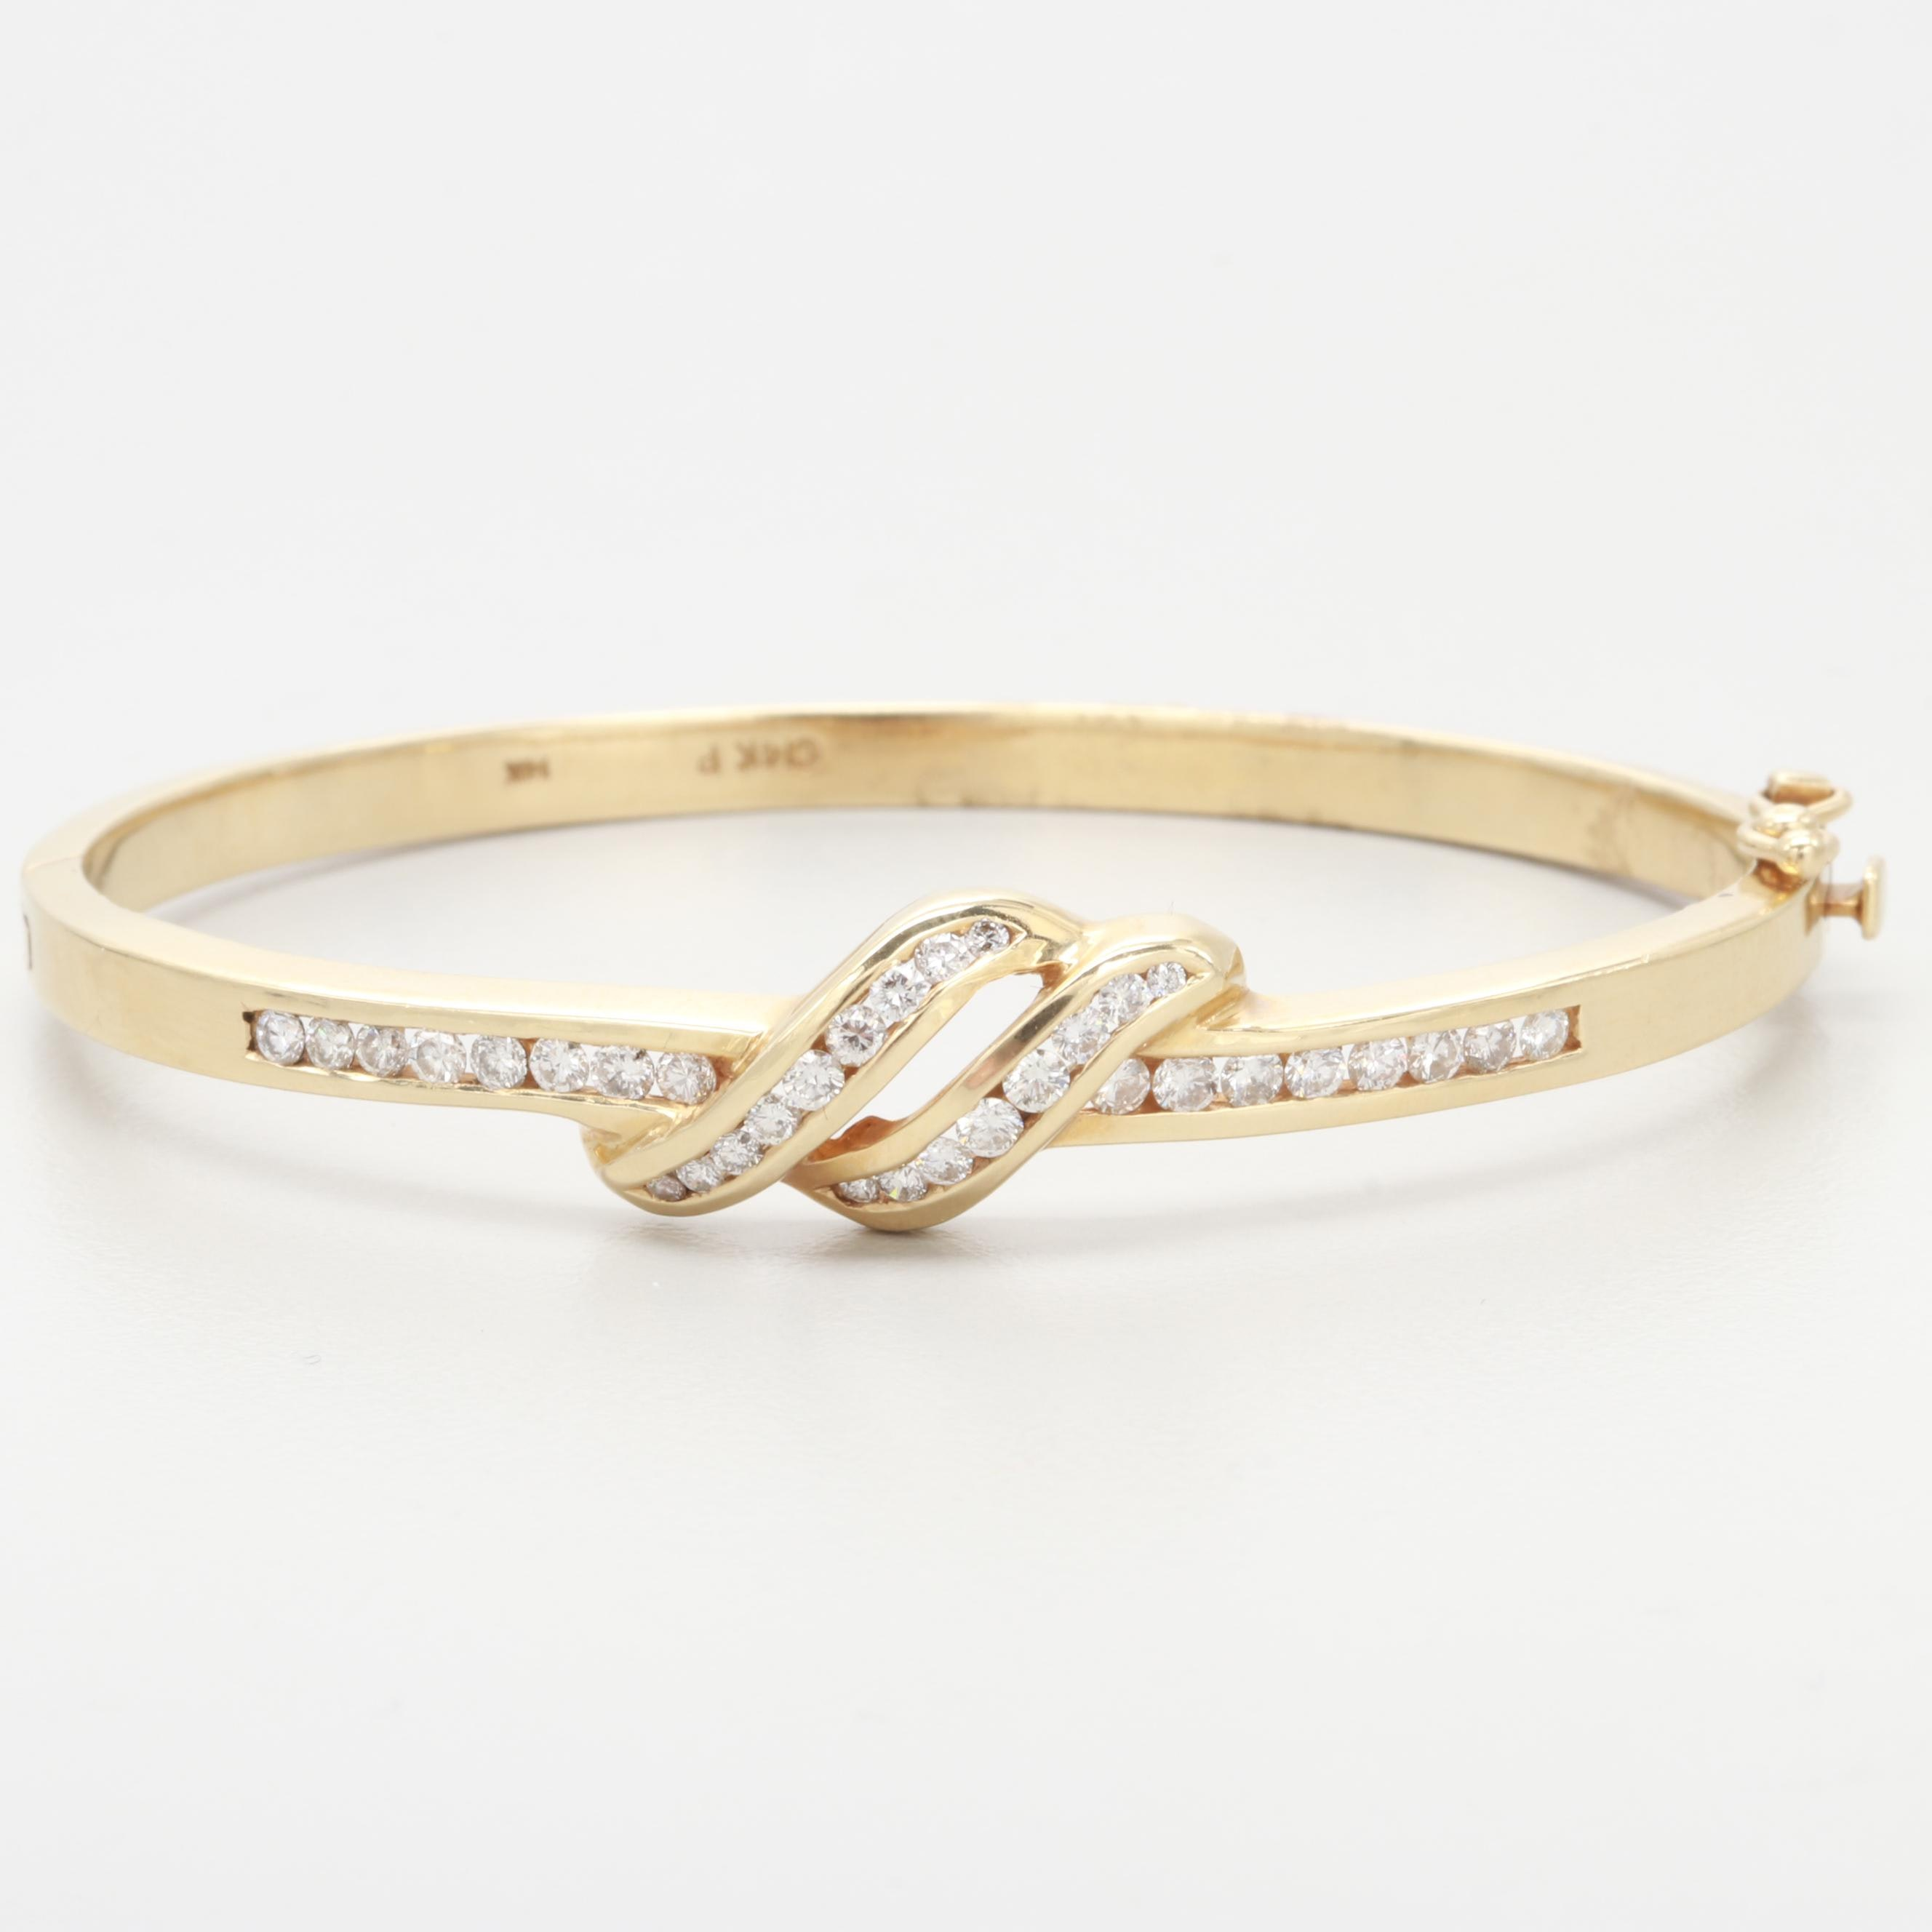 14K Yellow Gold Diamond Hinged Bangle Bracelet